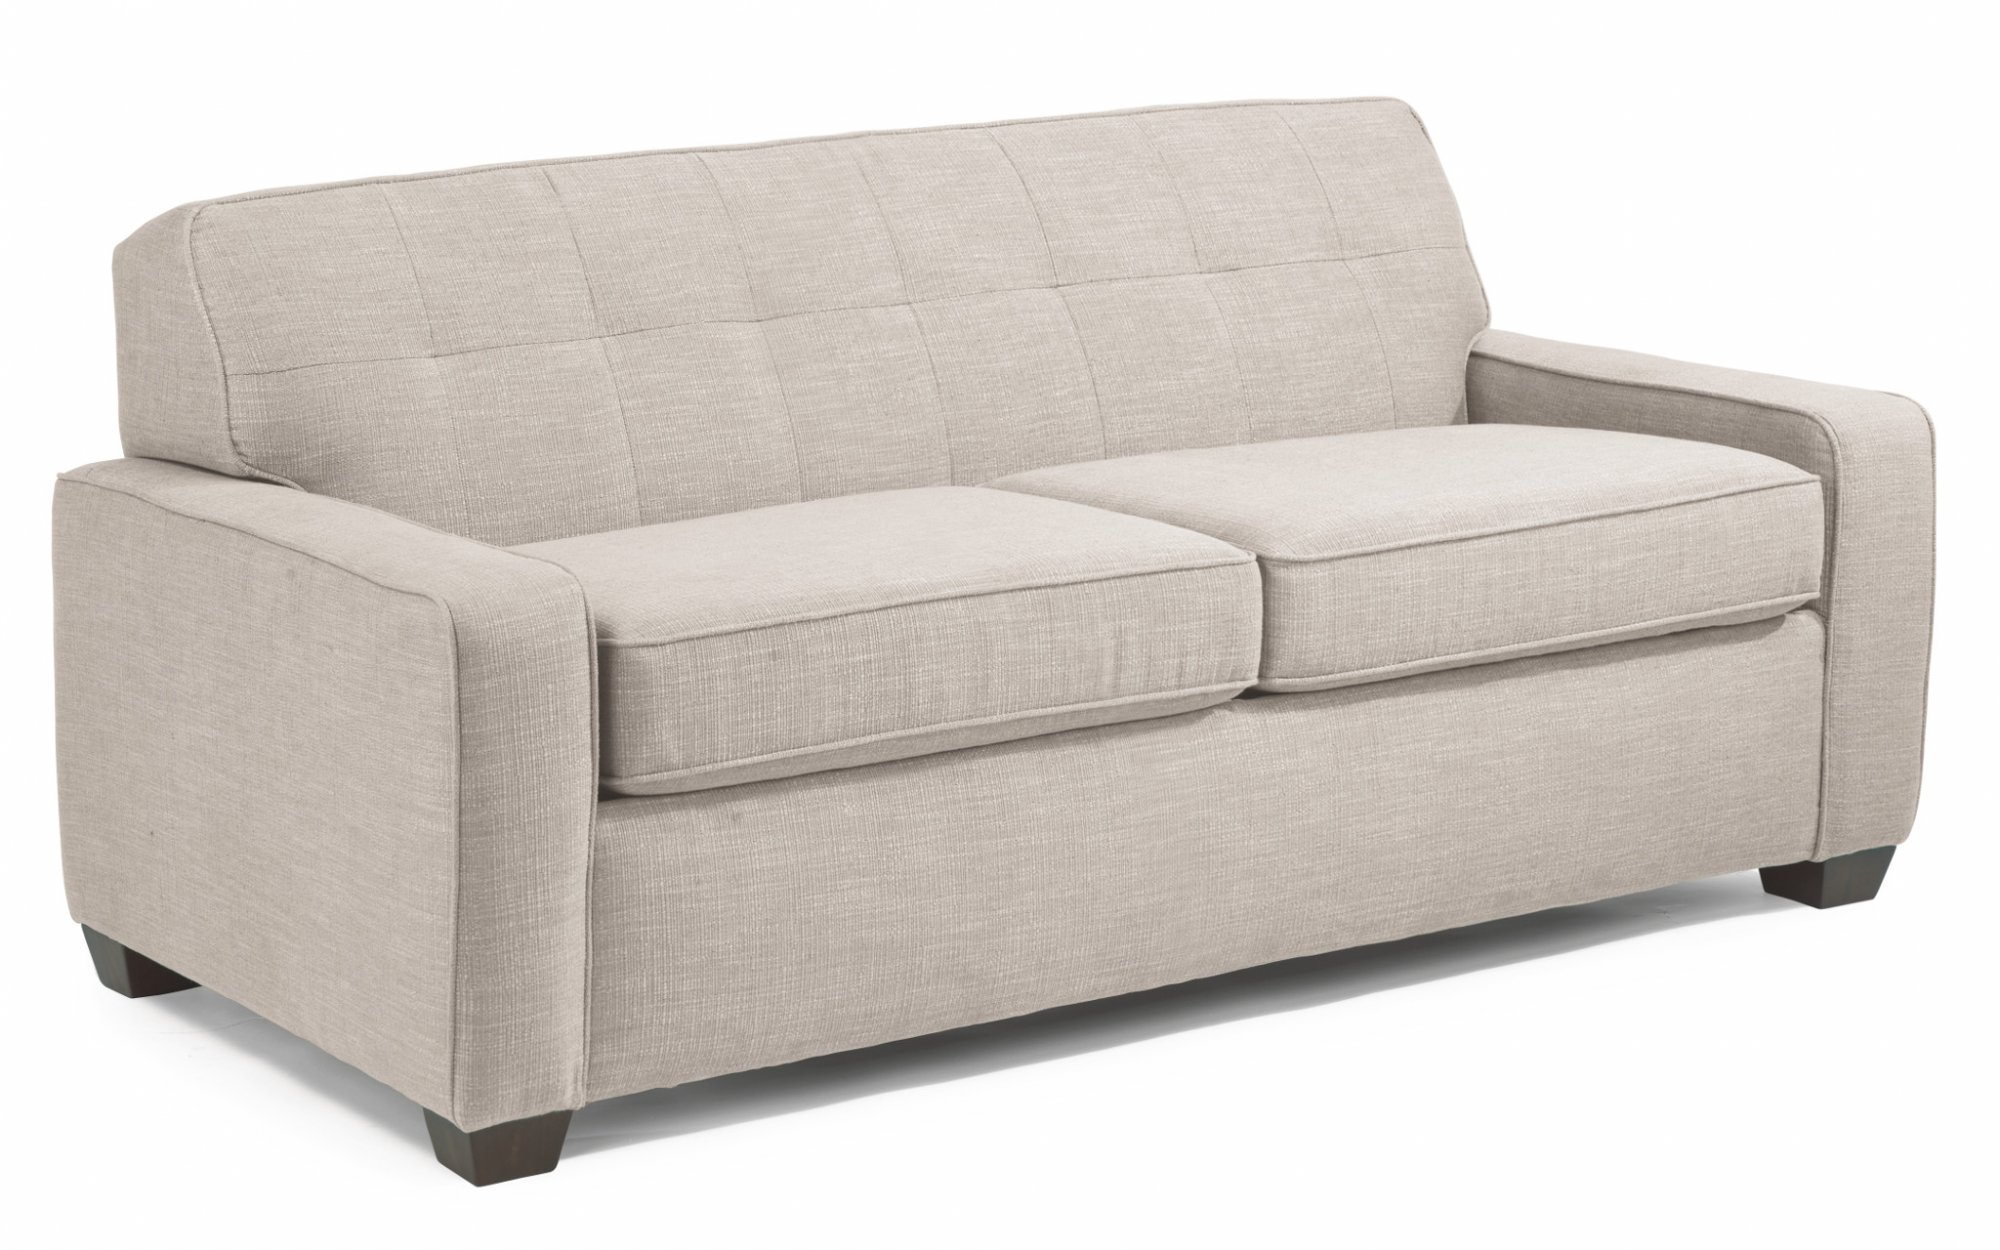 Anthem  Queen sleeper sofa